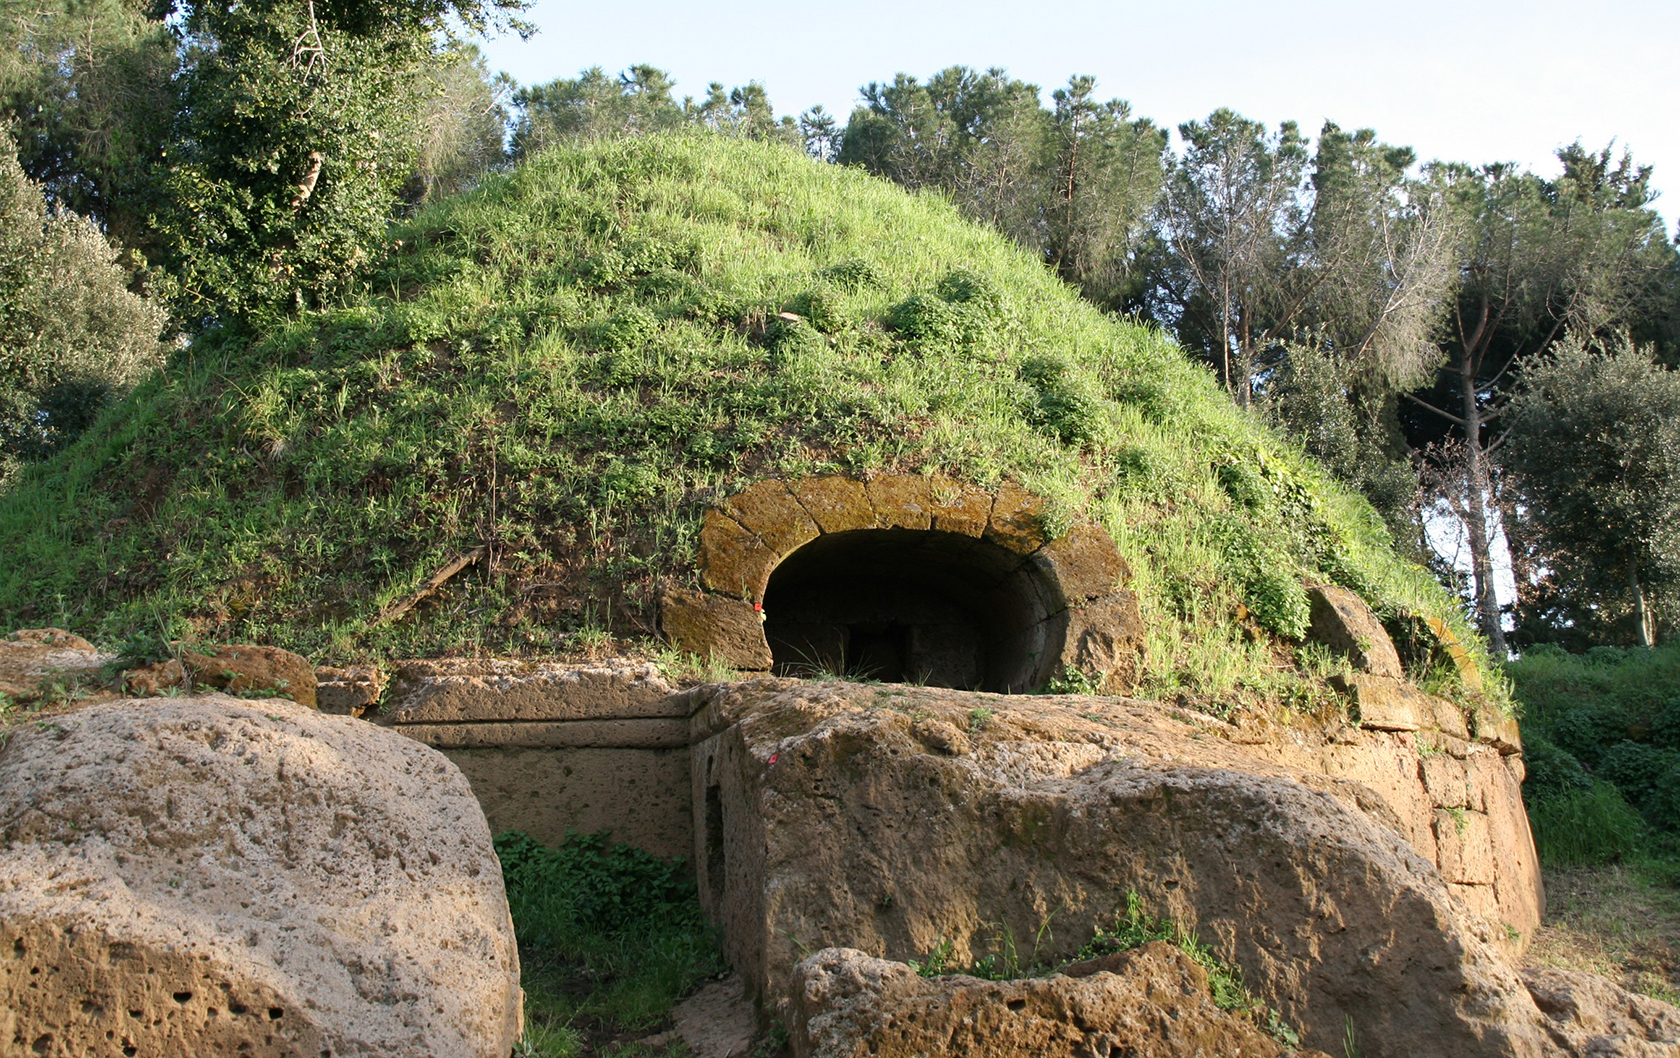 The domed roof of a tomb at the Necropolis of Cerveteri